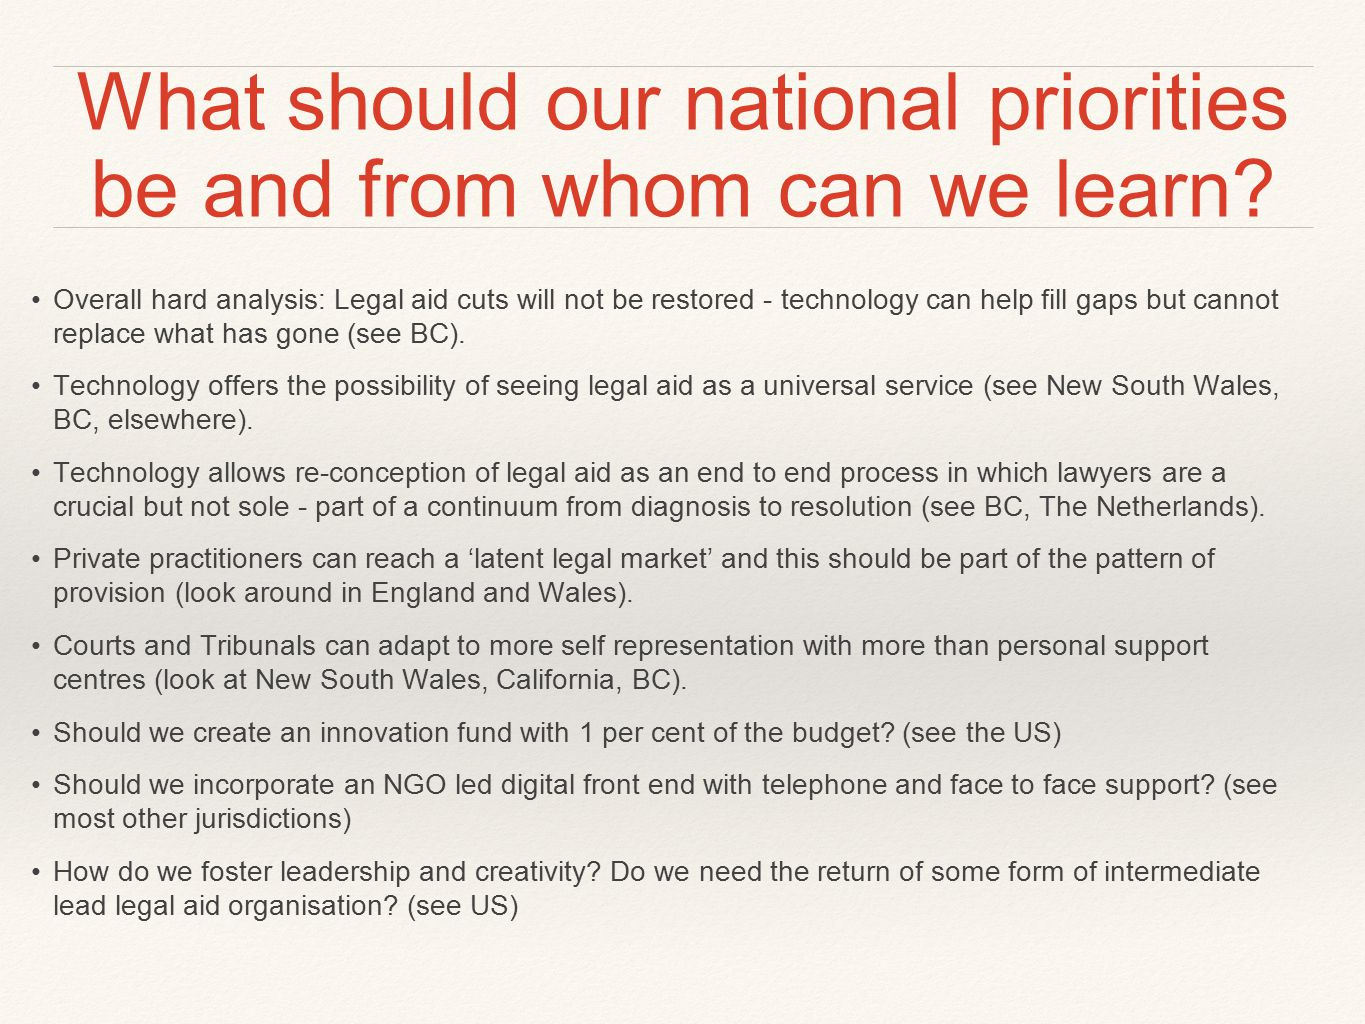 What should our national priorities be and from whom can we learn? Overall hard analysis: Legal aid cuts will not be restored - technology can help fi